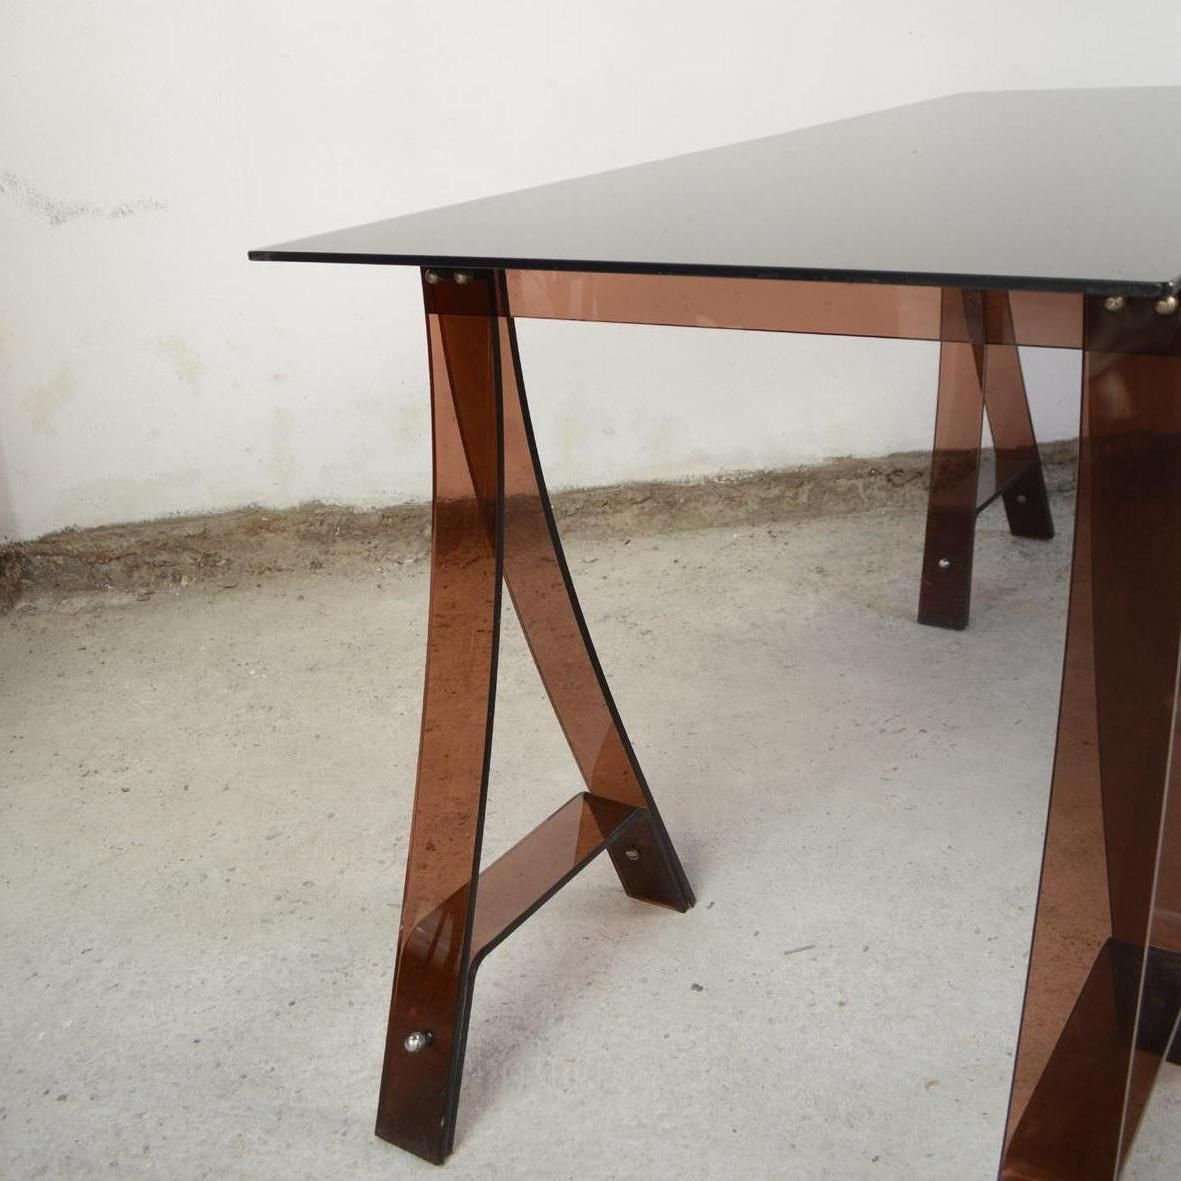 table by marcello gacita and pierre tiberi 1970s for sale at pamono. Black Bedroom Furniture Sets. Home Design Ideas